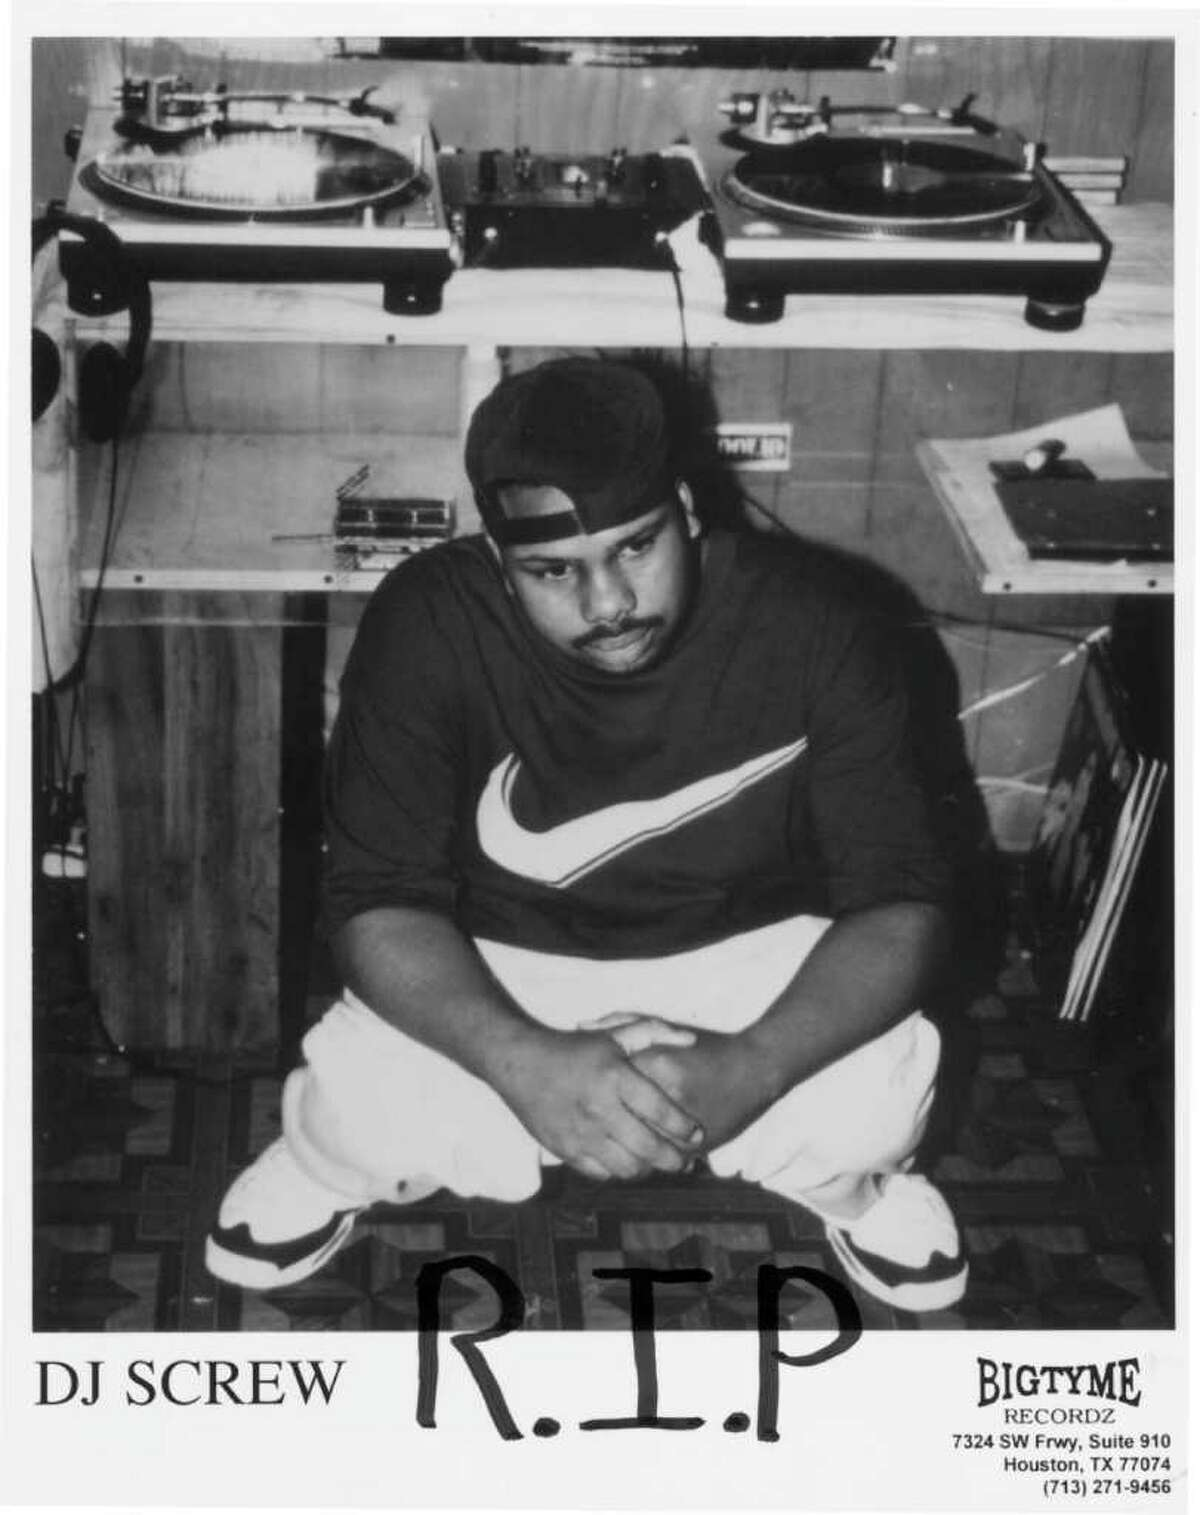 11/00 DJ Screw publicity photo with R.I.P. written on it w/ marker, 4 days after he died